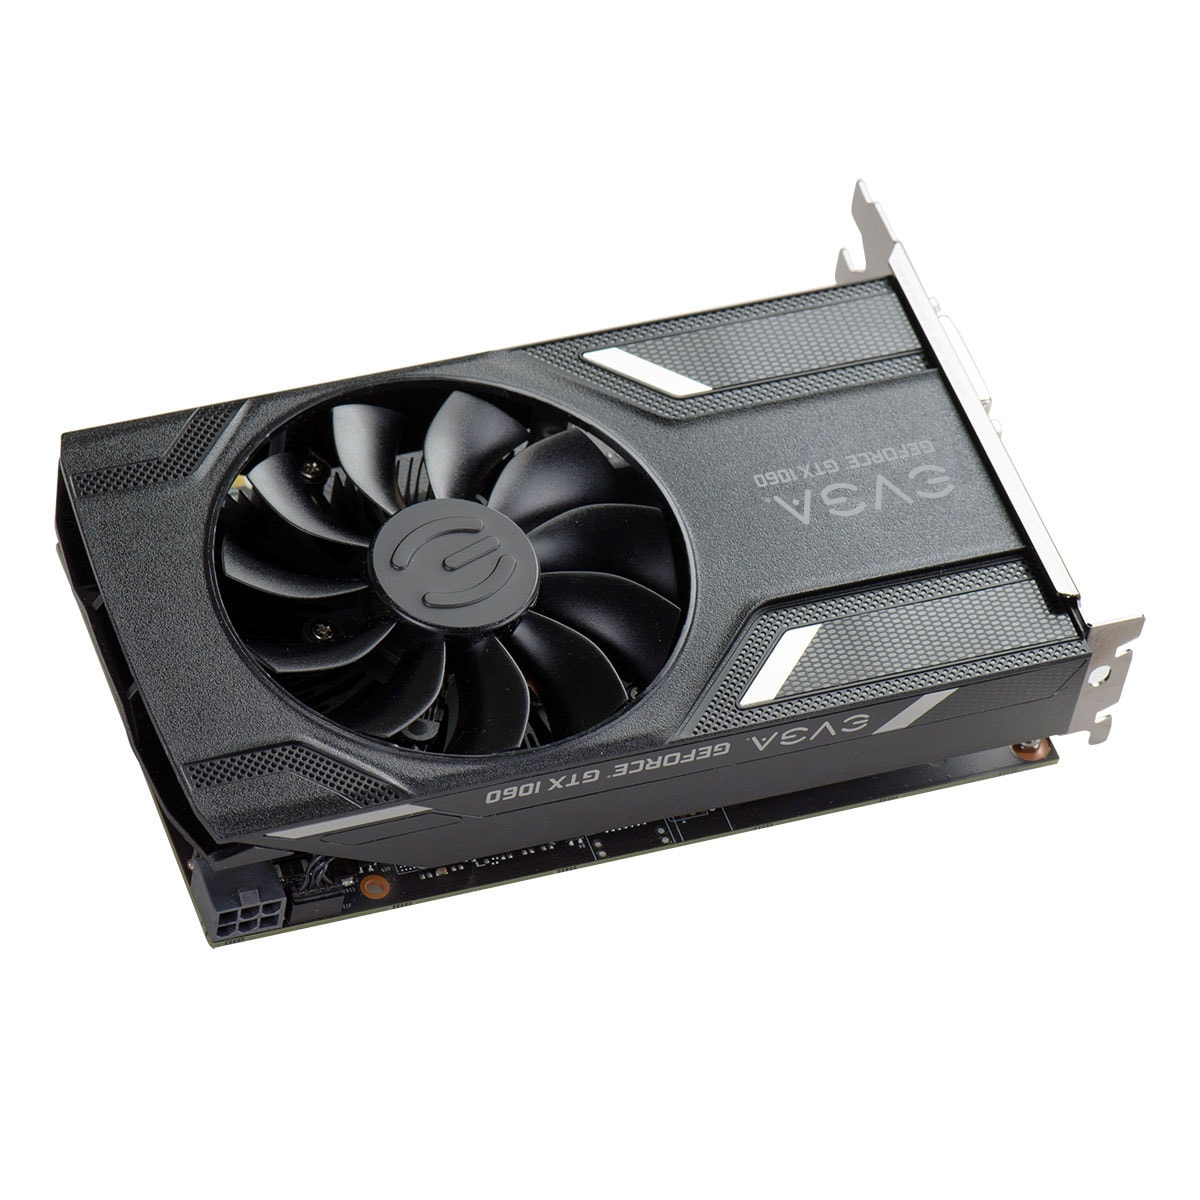 EVGA GTX 1060 Gaming 3G 6160 3Go - Carte graphique EVGA - 2